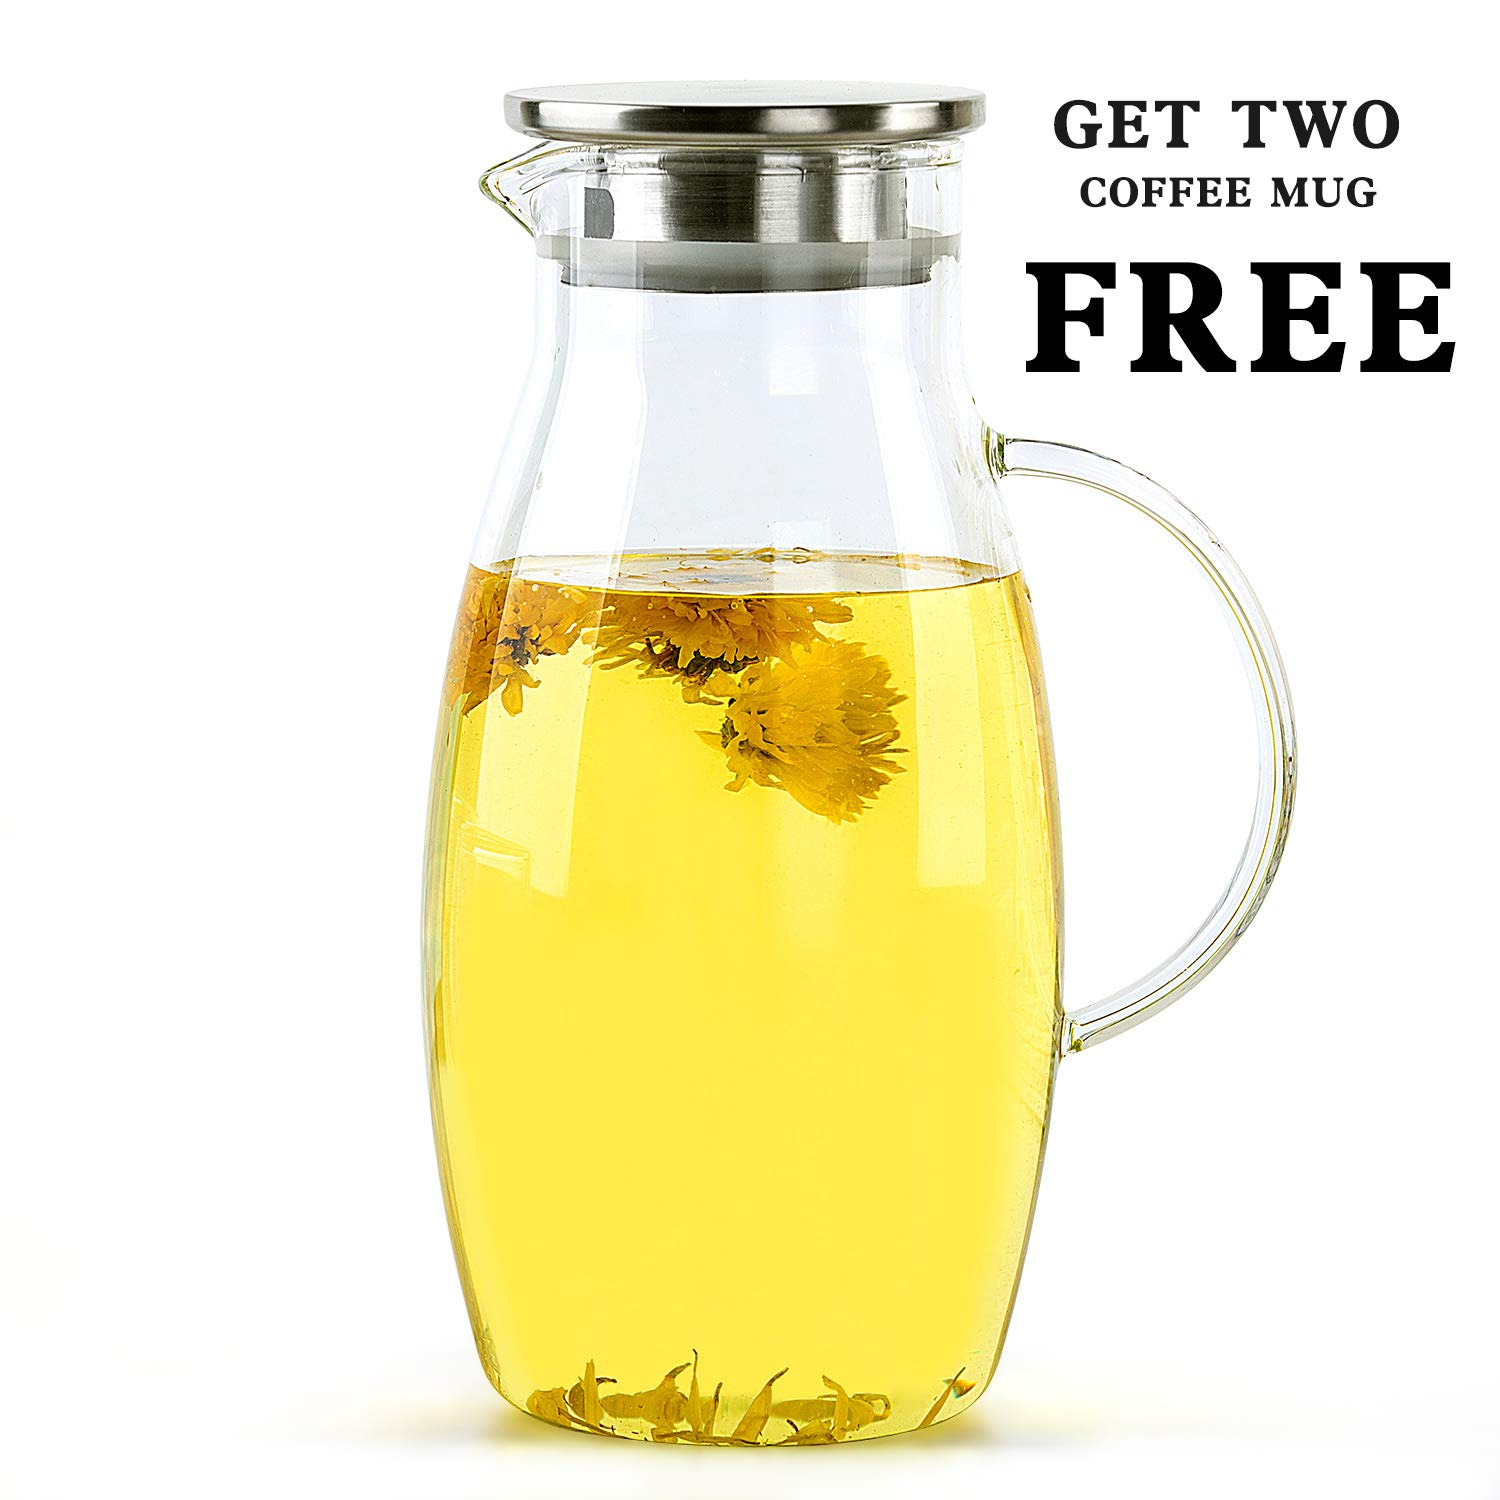 2.0 Liter Glass Water Pitcher with Stainless Steel Lid, Beverage Jug for Juice Lemon Water Iced Tea, Water Carafe with Handle, 68 Oz